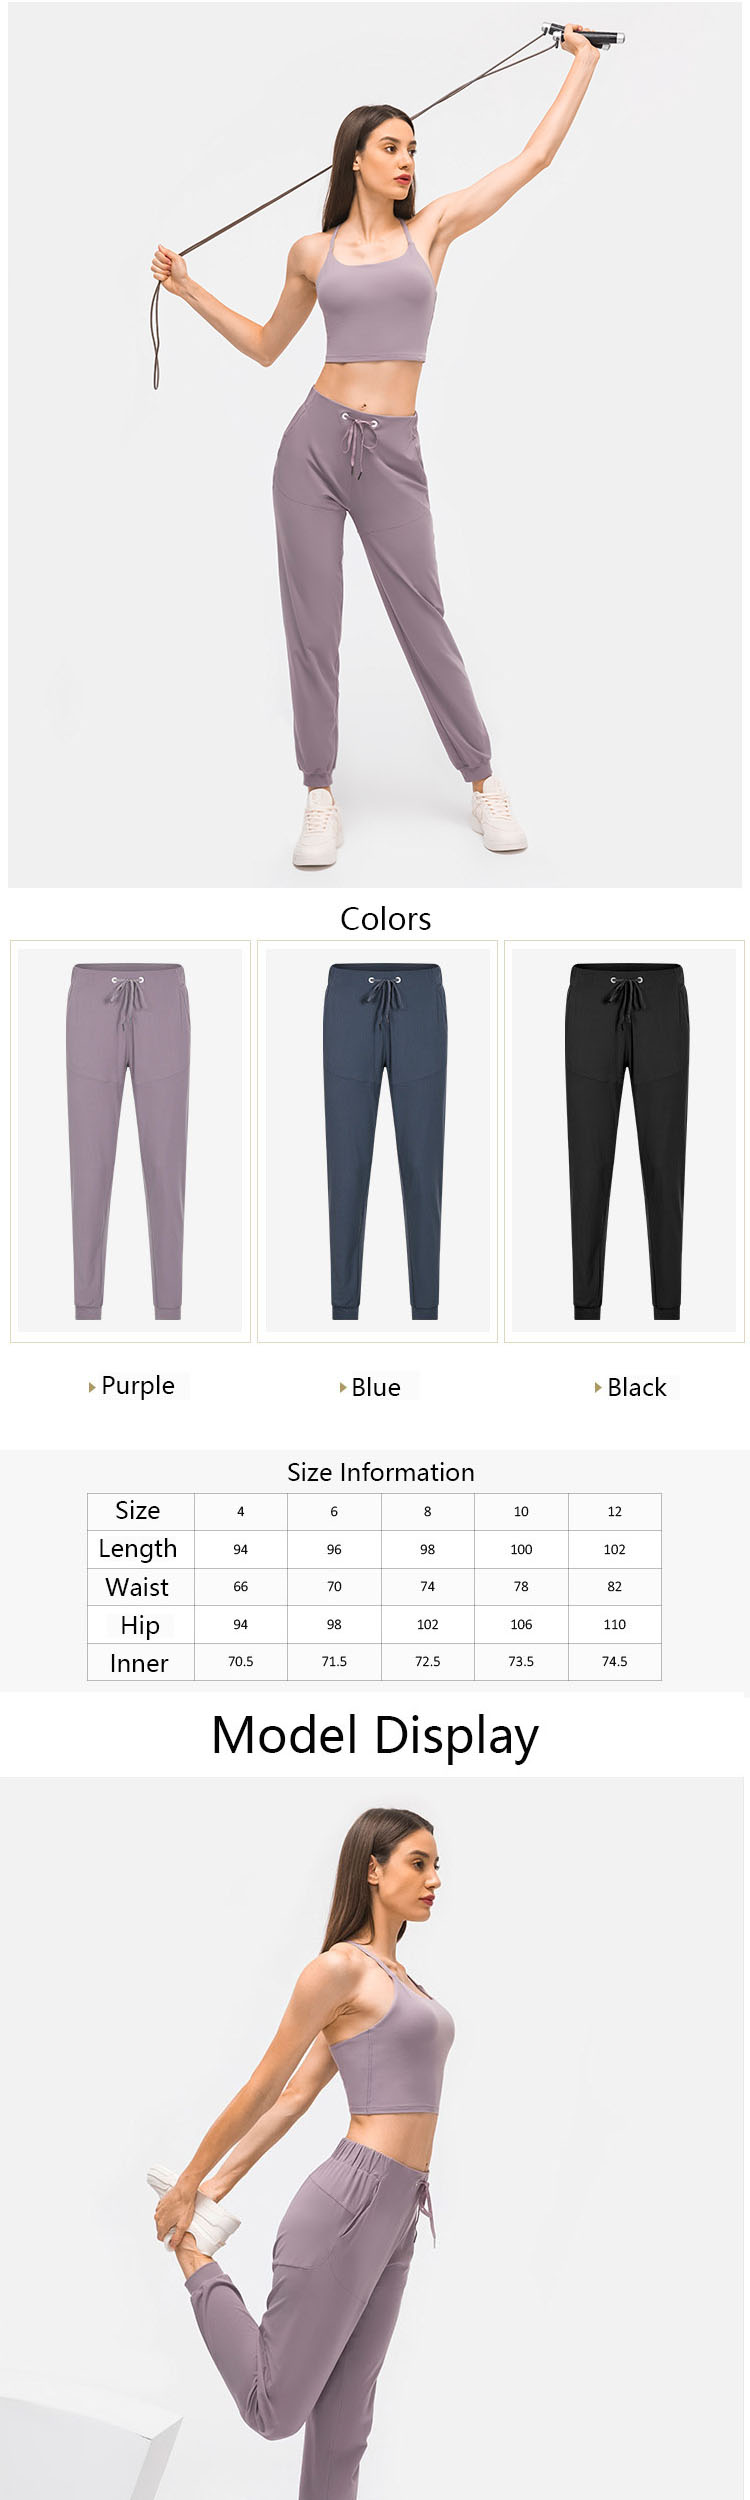 Womens straight leg yoga pants have long occupied a place in the fashion circle